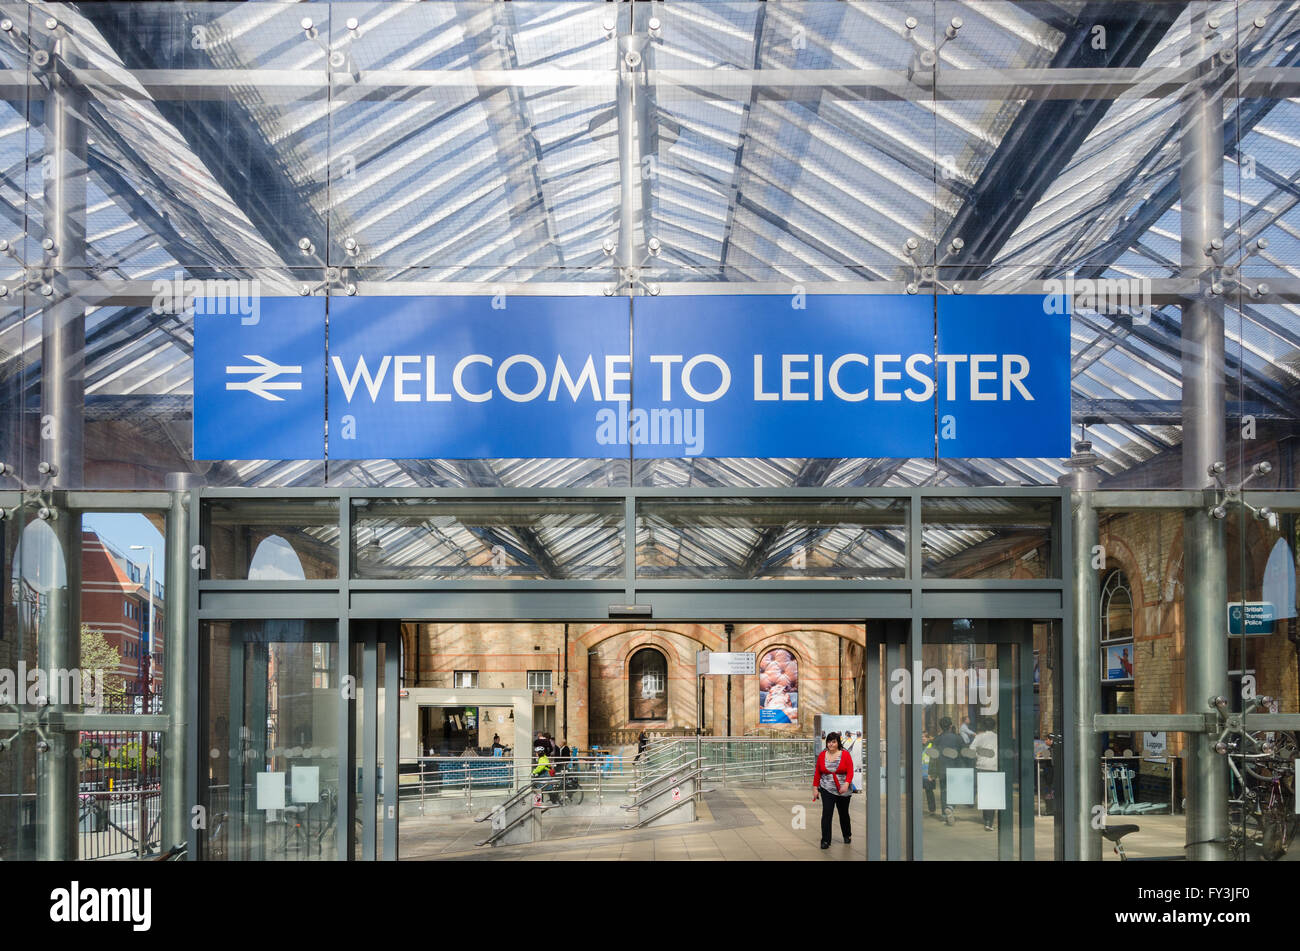 Sign saying 'Welcome To Leicester' in Leicester Railway Station - Stock Image